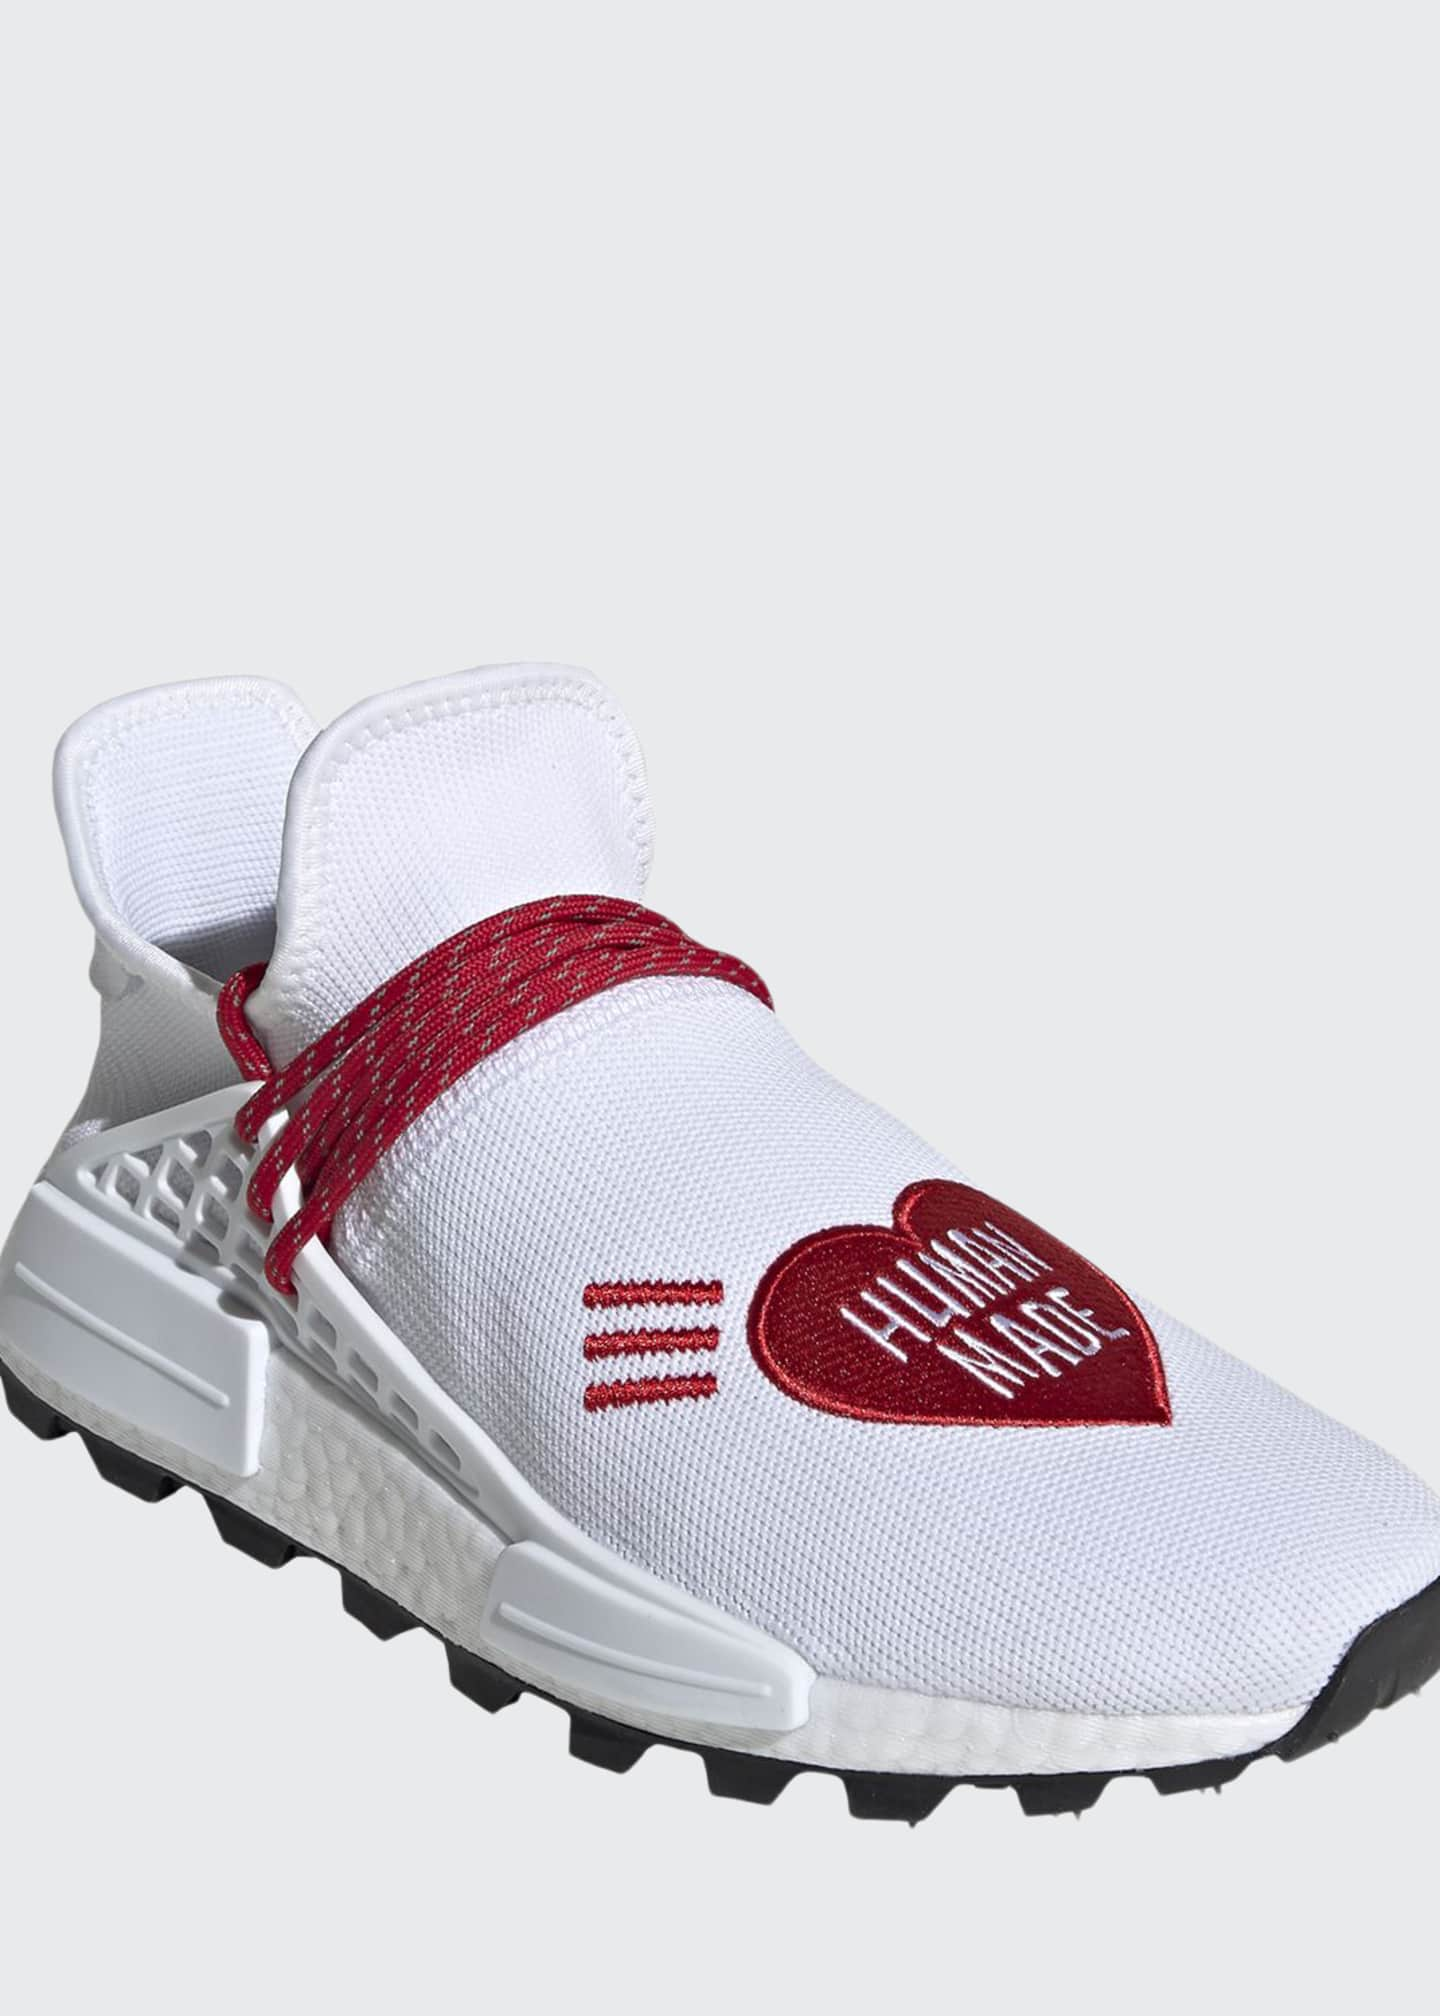 adidas x Pharrell Williams Men's NMD Human Made